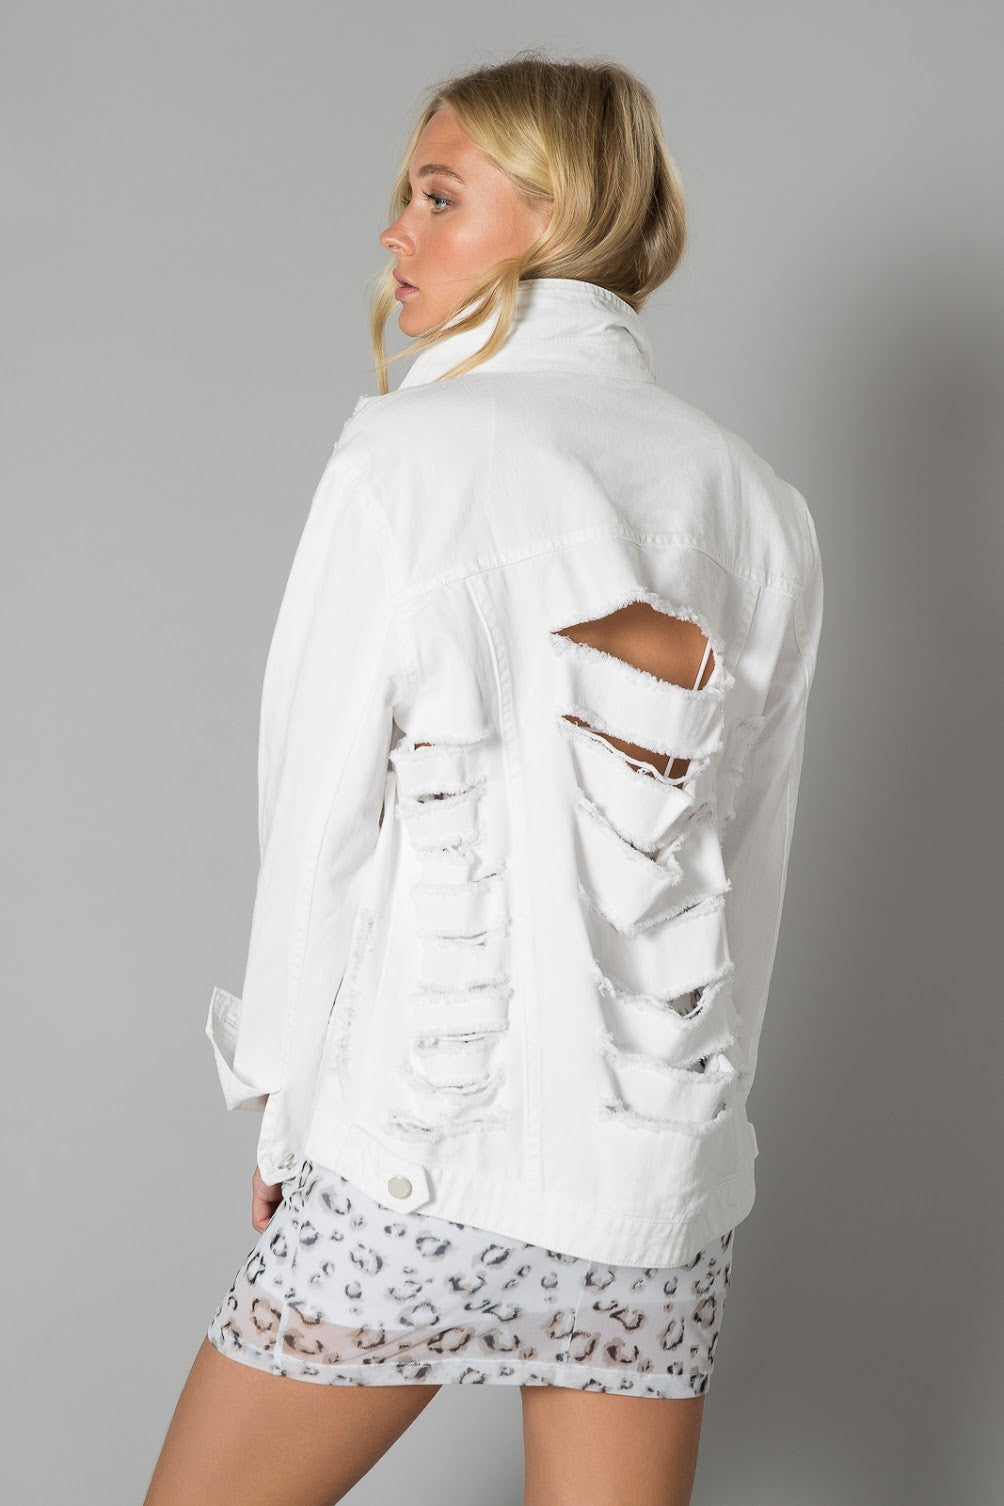 Emmett Destructed Trucker Jacket